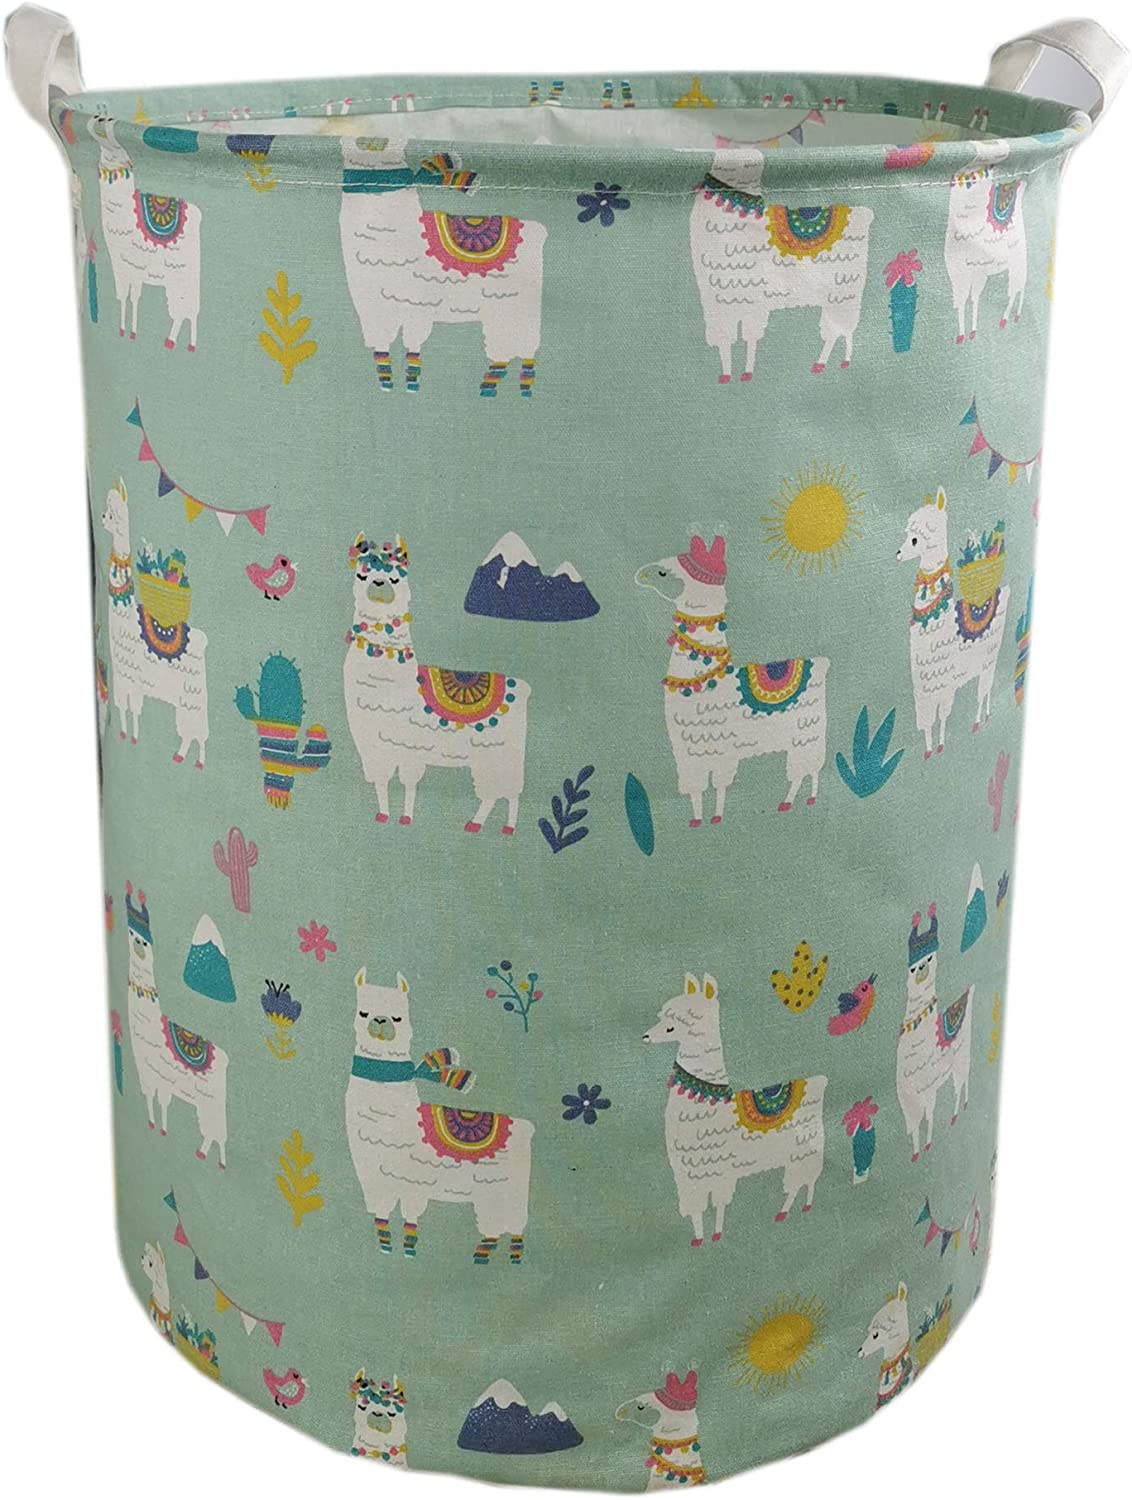 Collapsible Toy Storage Bin Waterproof Organizer with Handles and Lid for Baby Nursery Kids Room Blue Dinosaur Injoy Large Storage Basket Laundry Hamper Home Decor